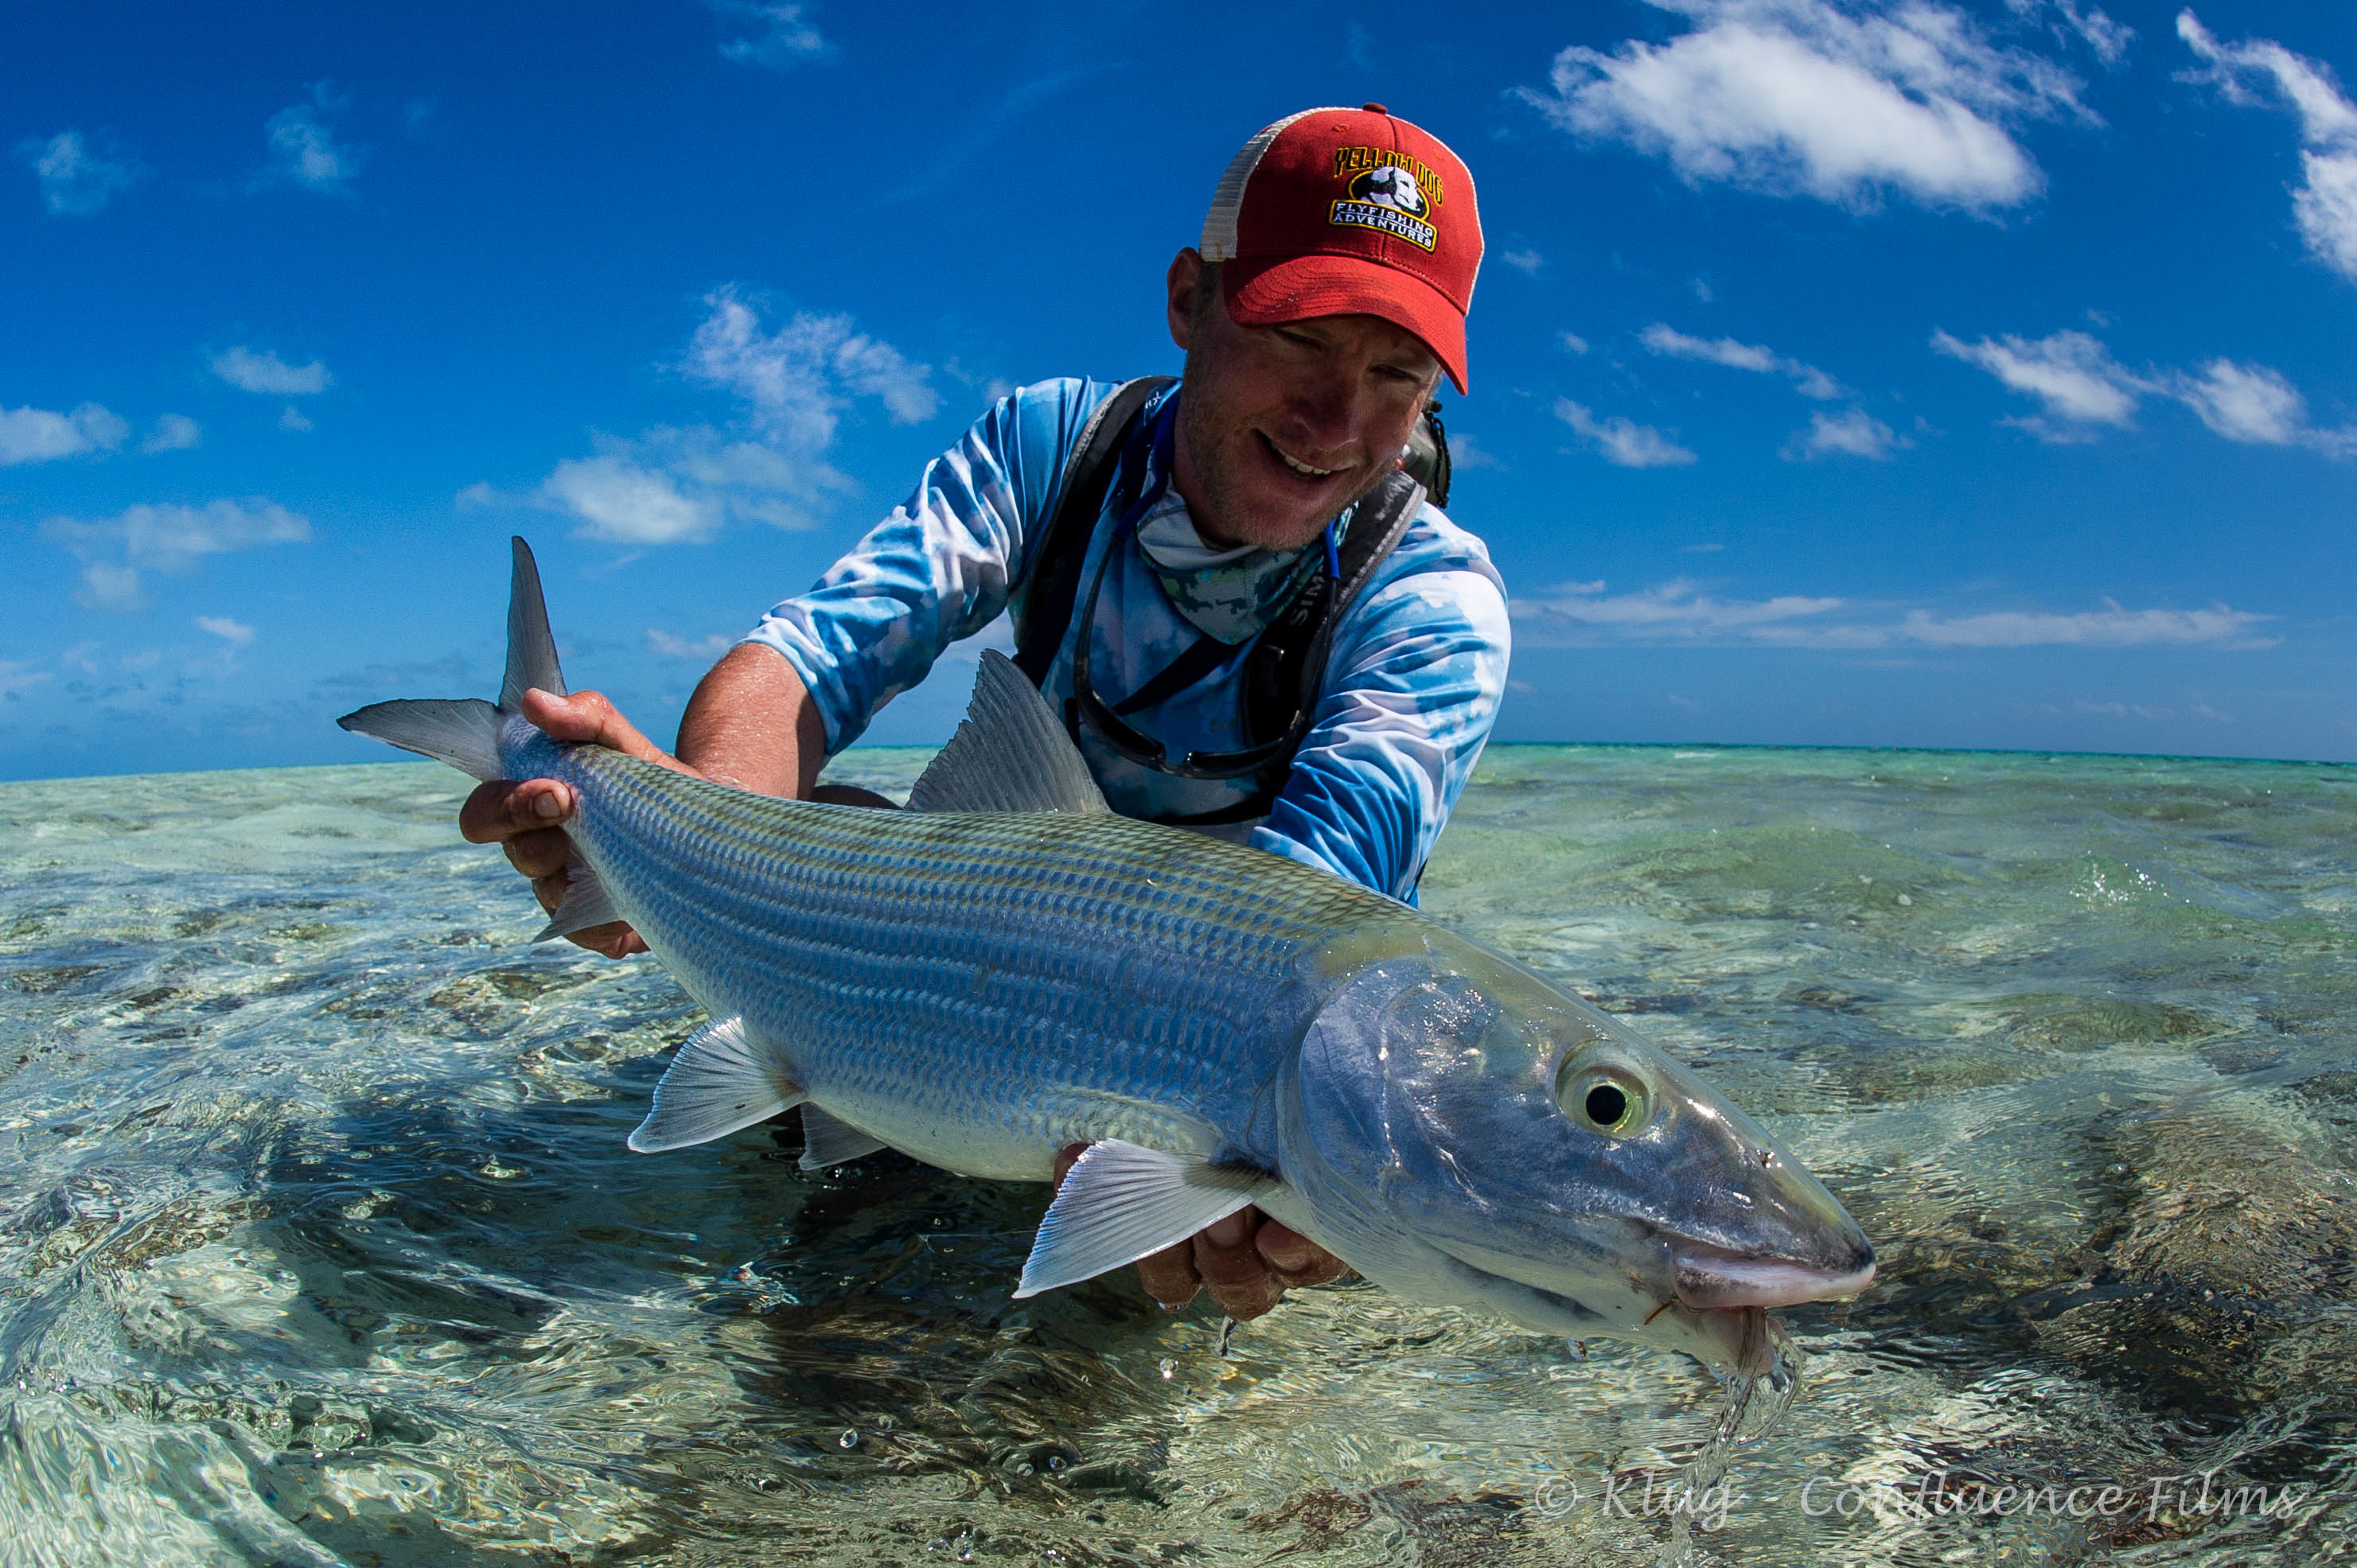 Fly fishing film waypoints from confluence films to for Fly fishing films